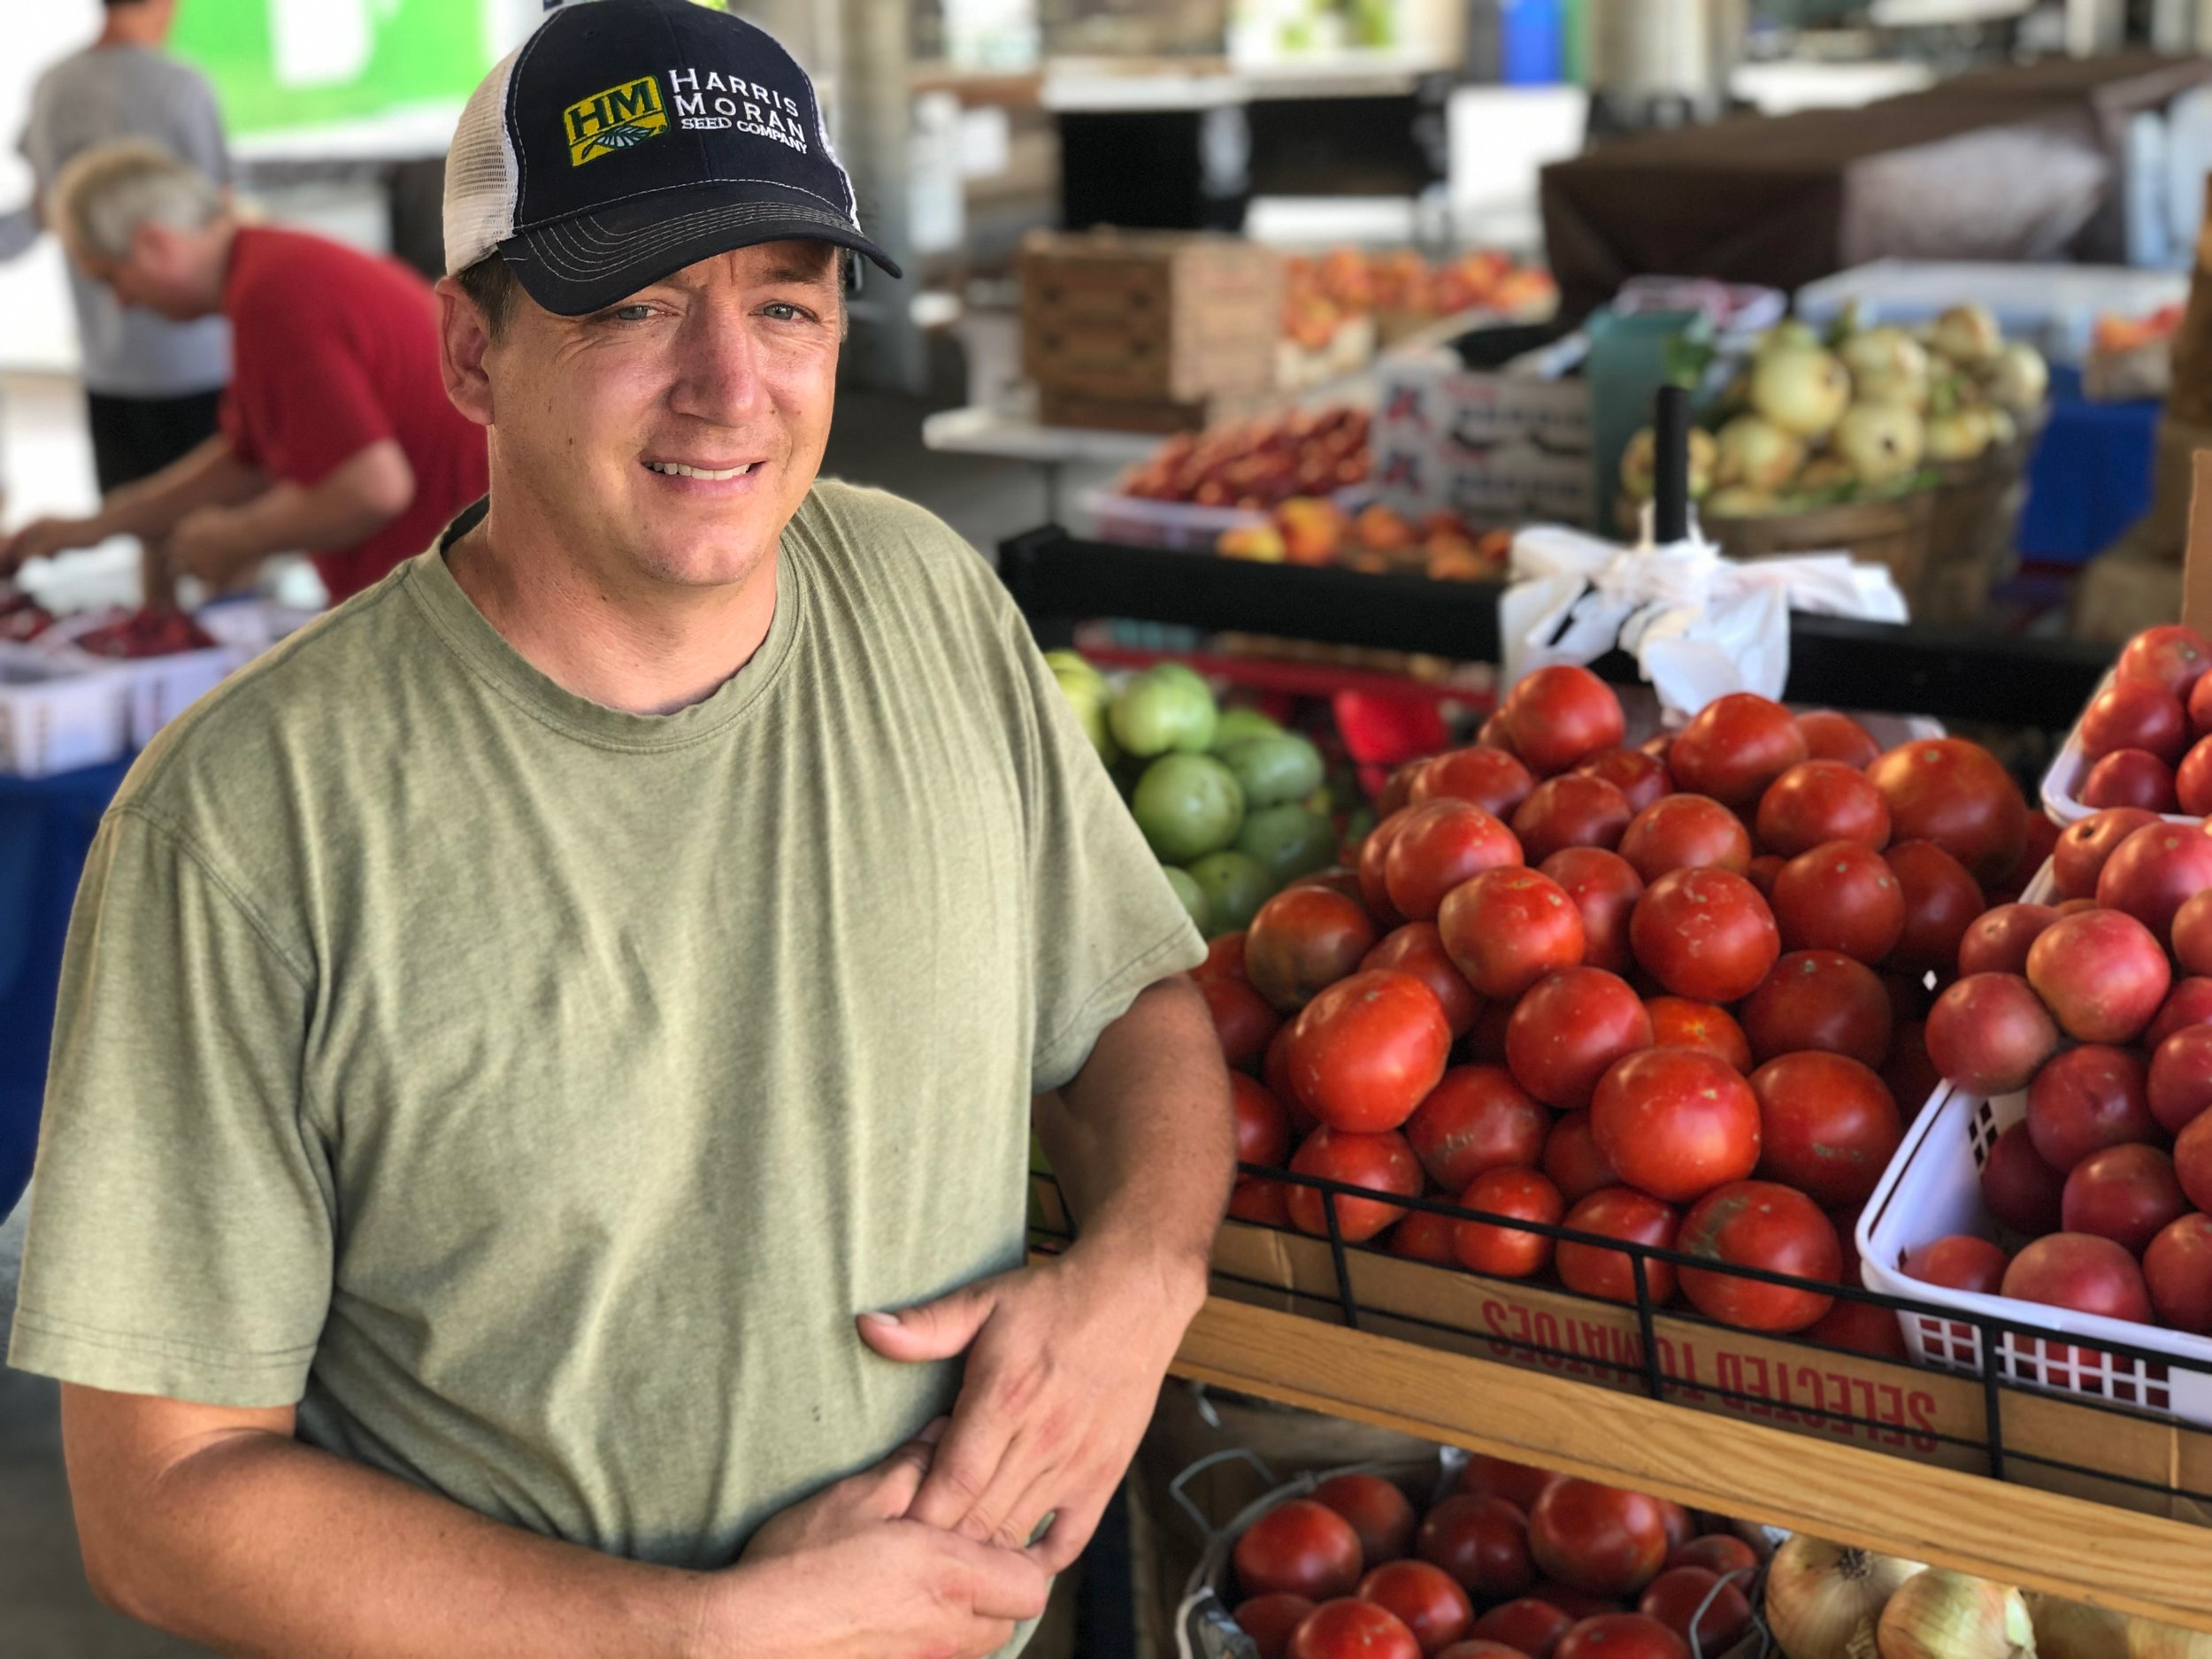 "Matthew Hancock raises 10 crops on his farm north of Nashville, nearly all of which are seasonally available at the Nashville Farmers' Market. ""Don't put all your eggs in one basket,"" he quips."